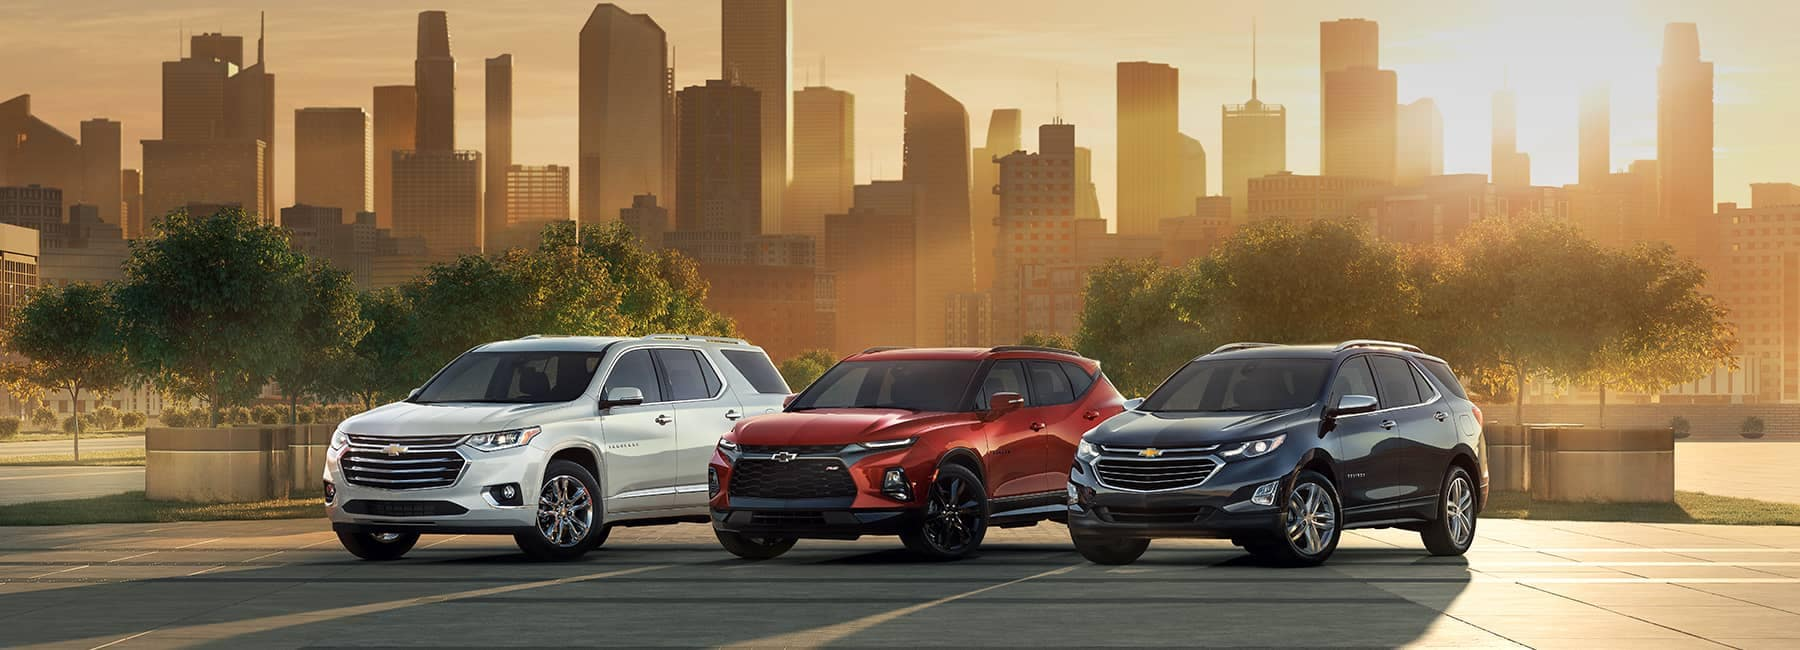 Chevy lineup2020